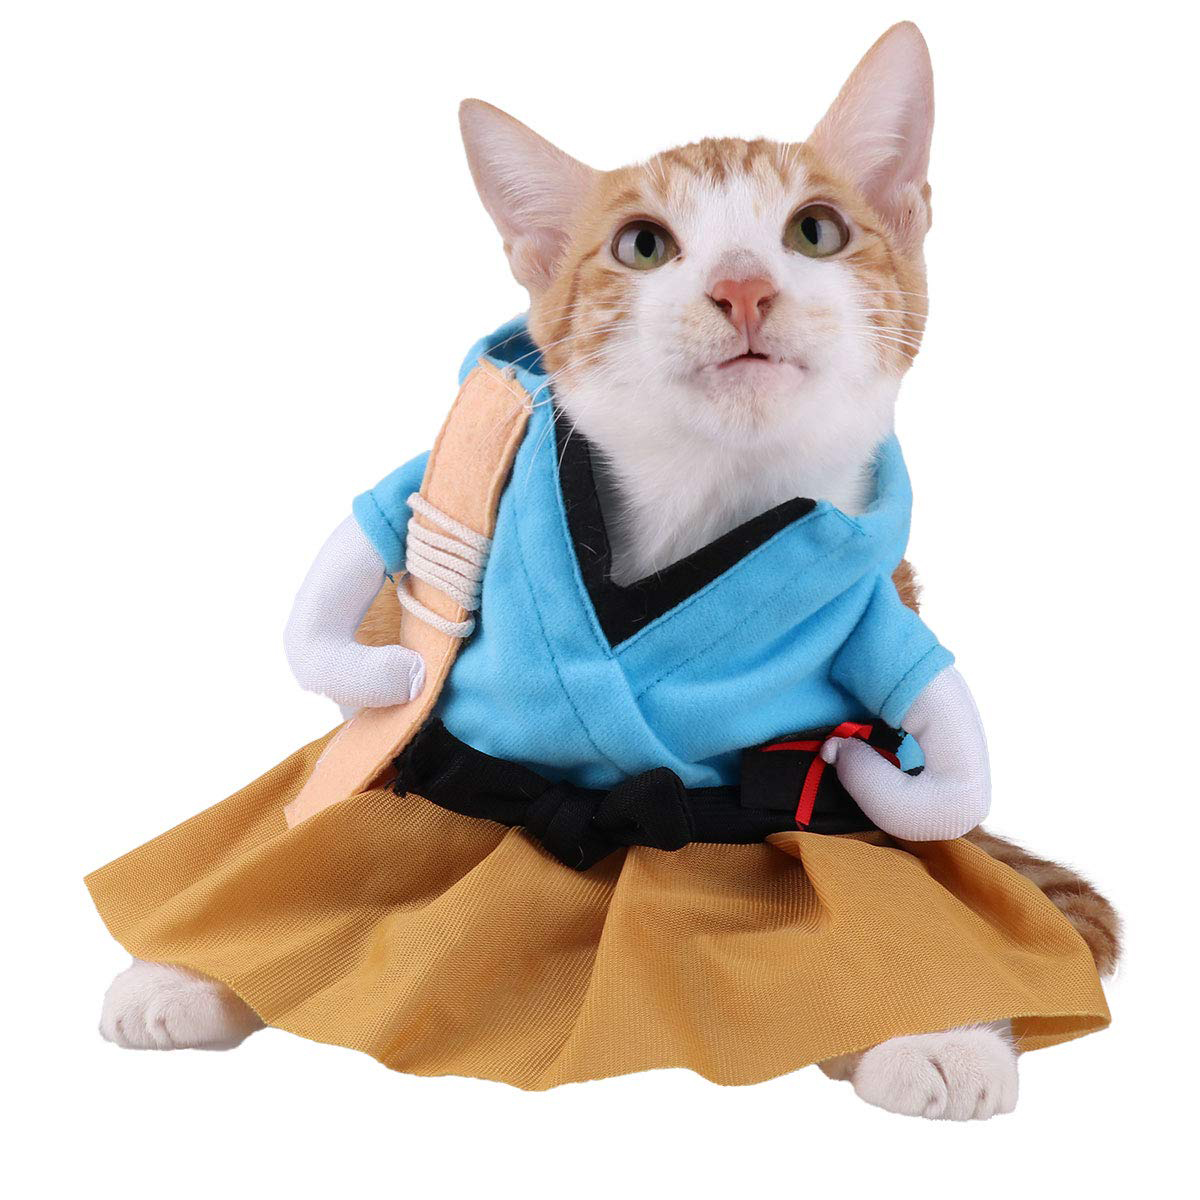 Cat-Dog-Tops-Clothes-Costume-Cool-Christmas-Halloween-Costume-Pet-Clothes thumbnail 6